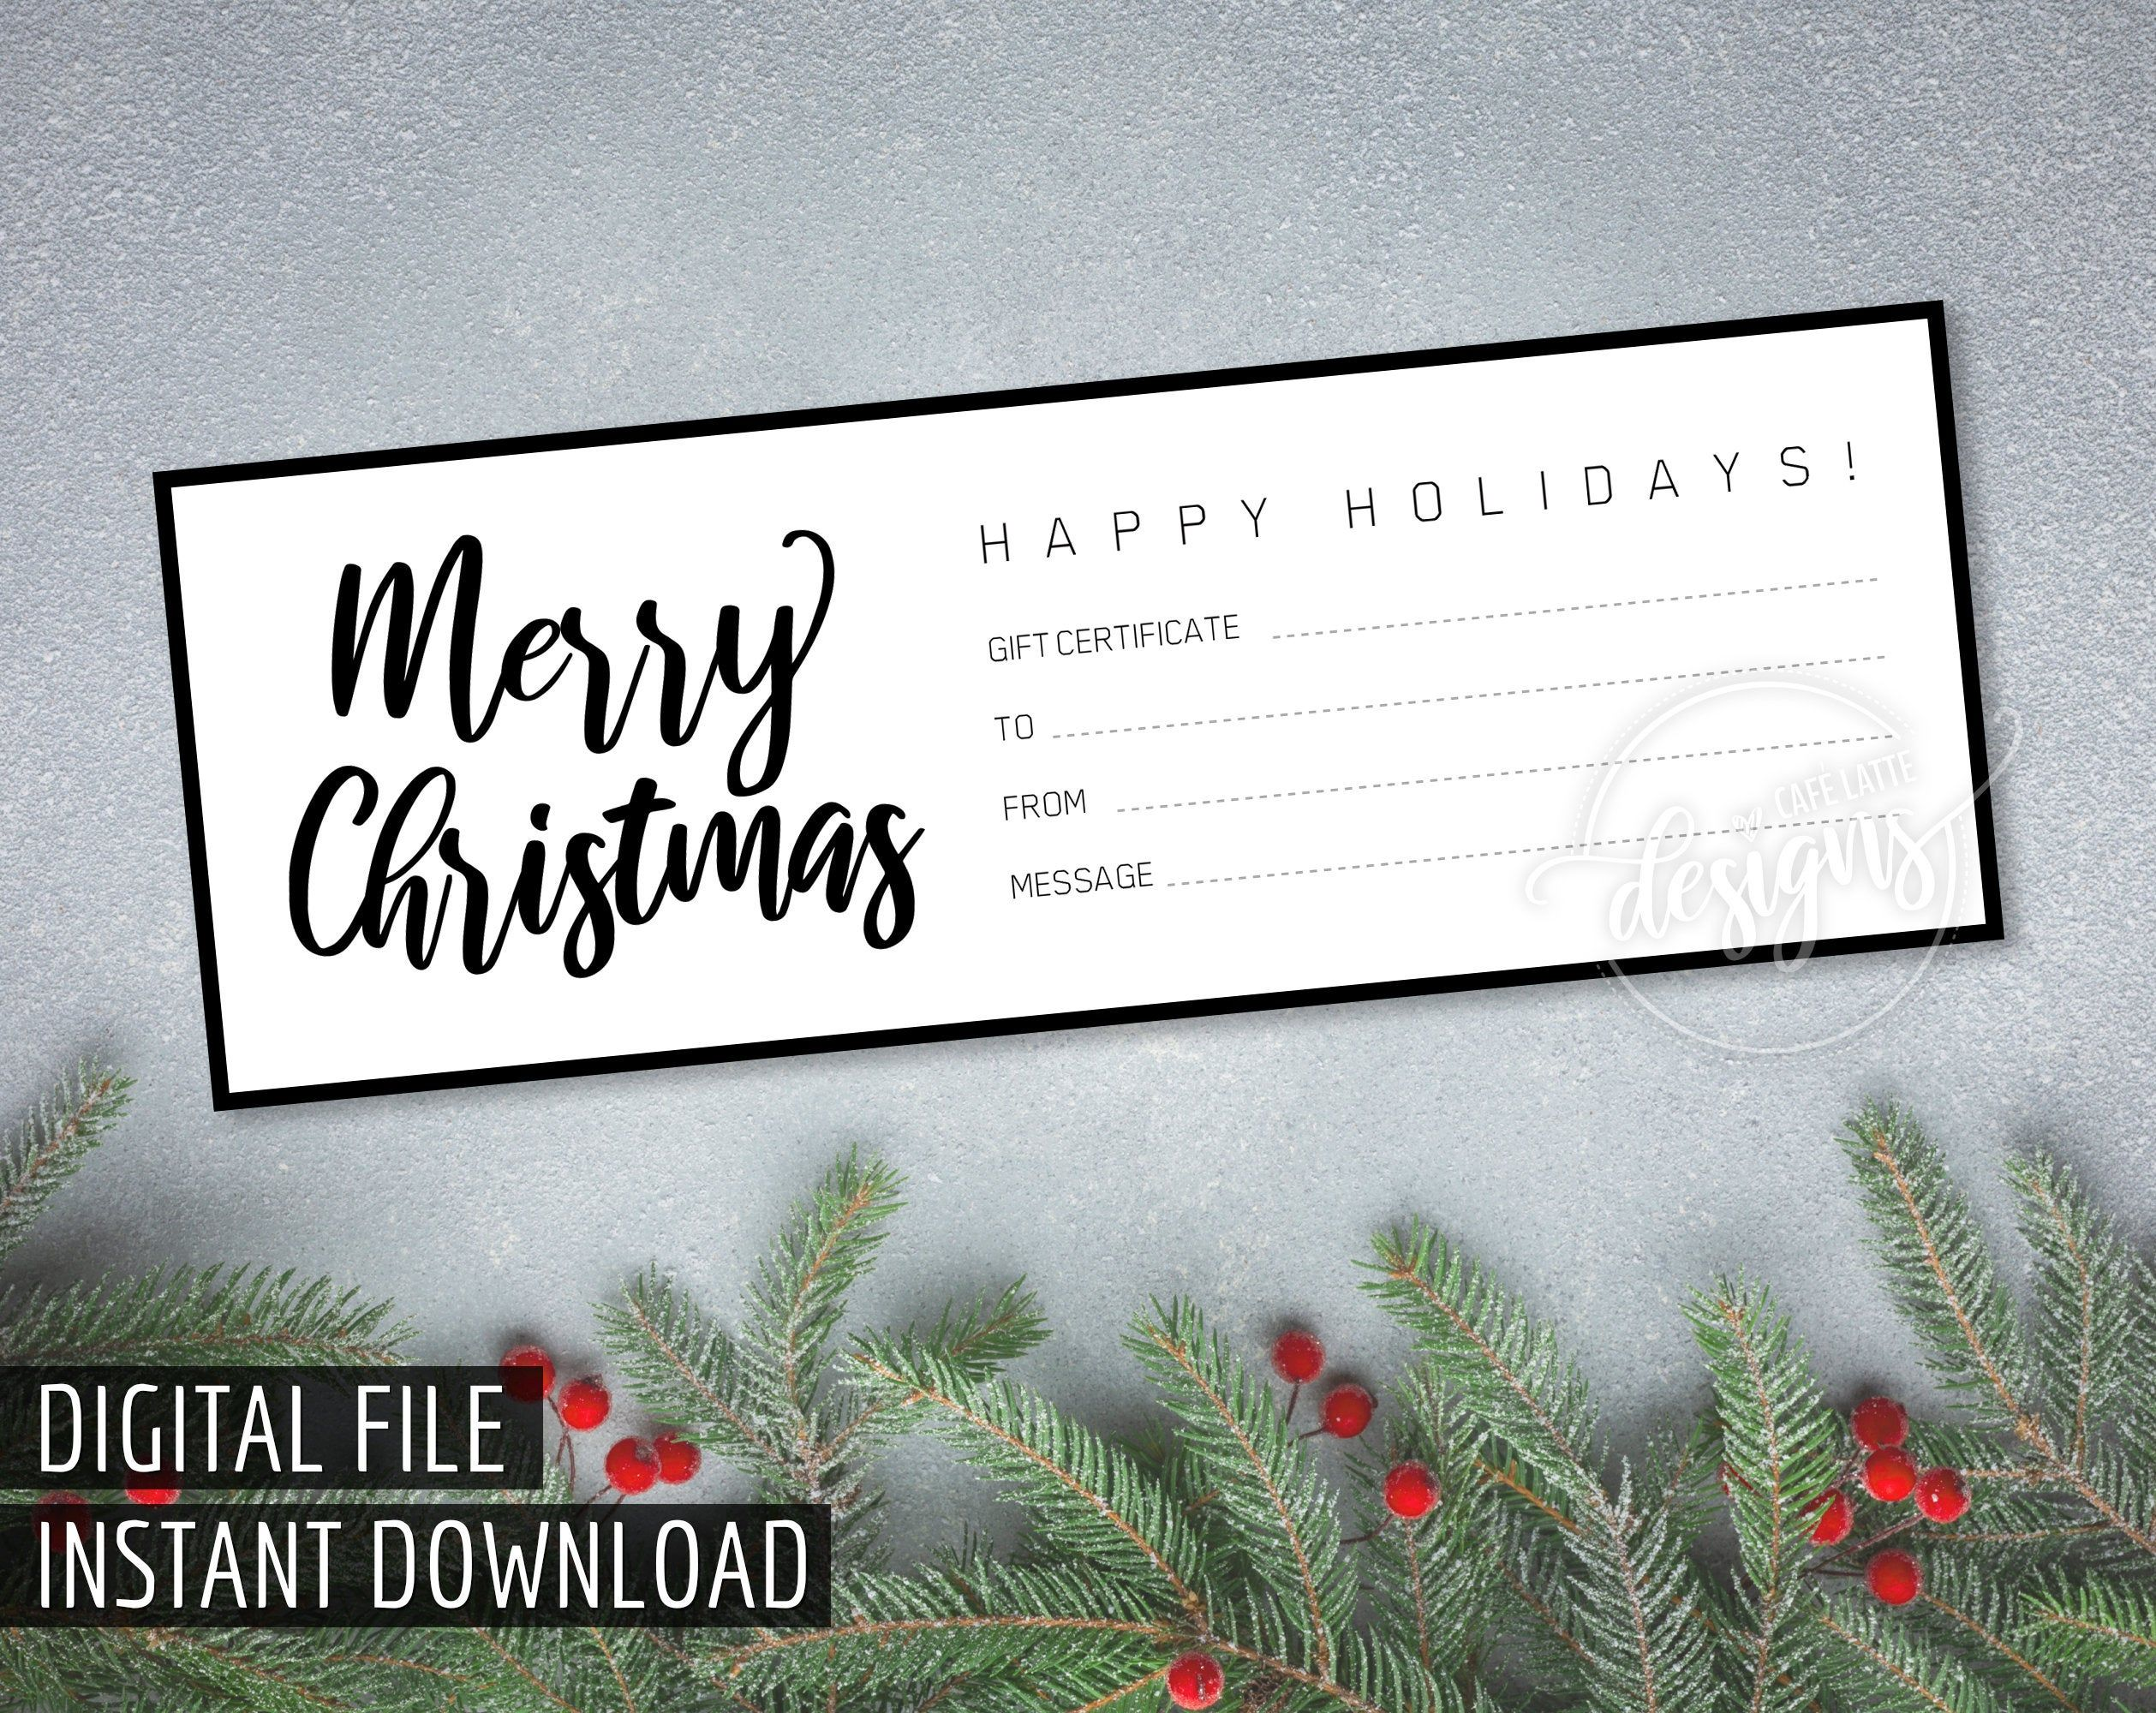 Christmas Gift Certificate Printable Gift Certificate Gift Coupon Instant Download Xmas Gift Idea Holiday Gift Black White Diy Printable Gift Certificate Christmas Gift Certificate Holiday Gift Certificates